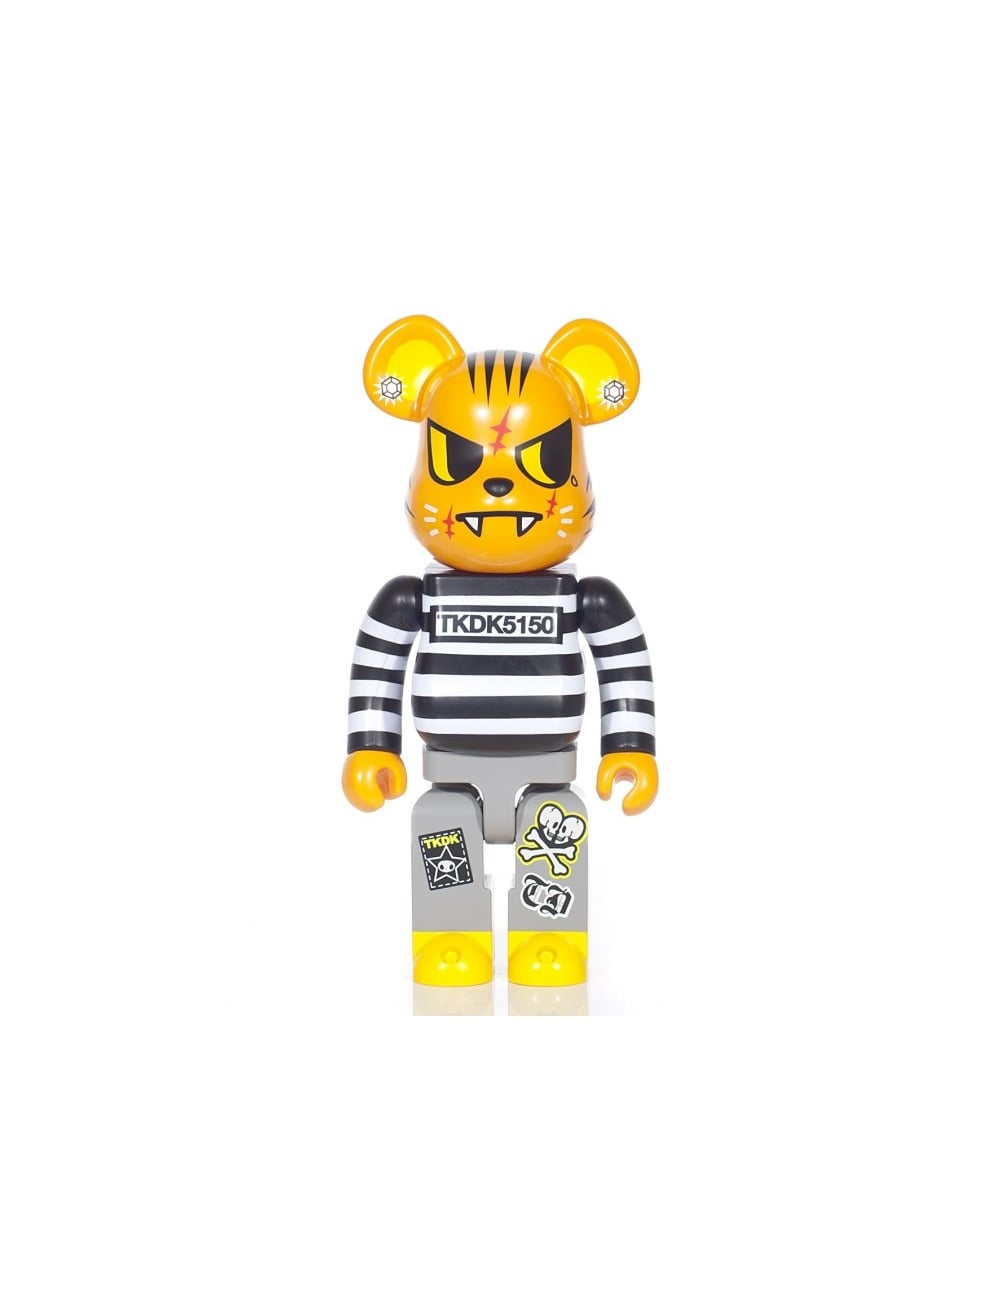 info for 7f6fe b248e Tokidoki - Tiger 400% Bearbrick